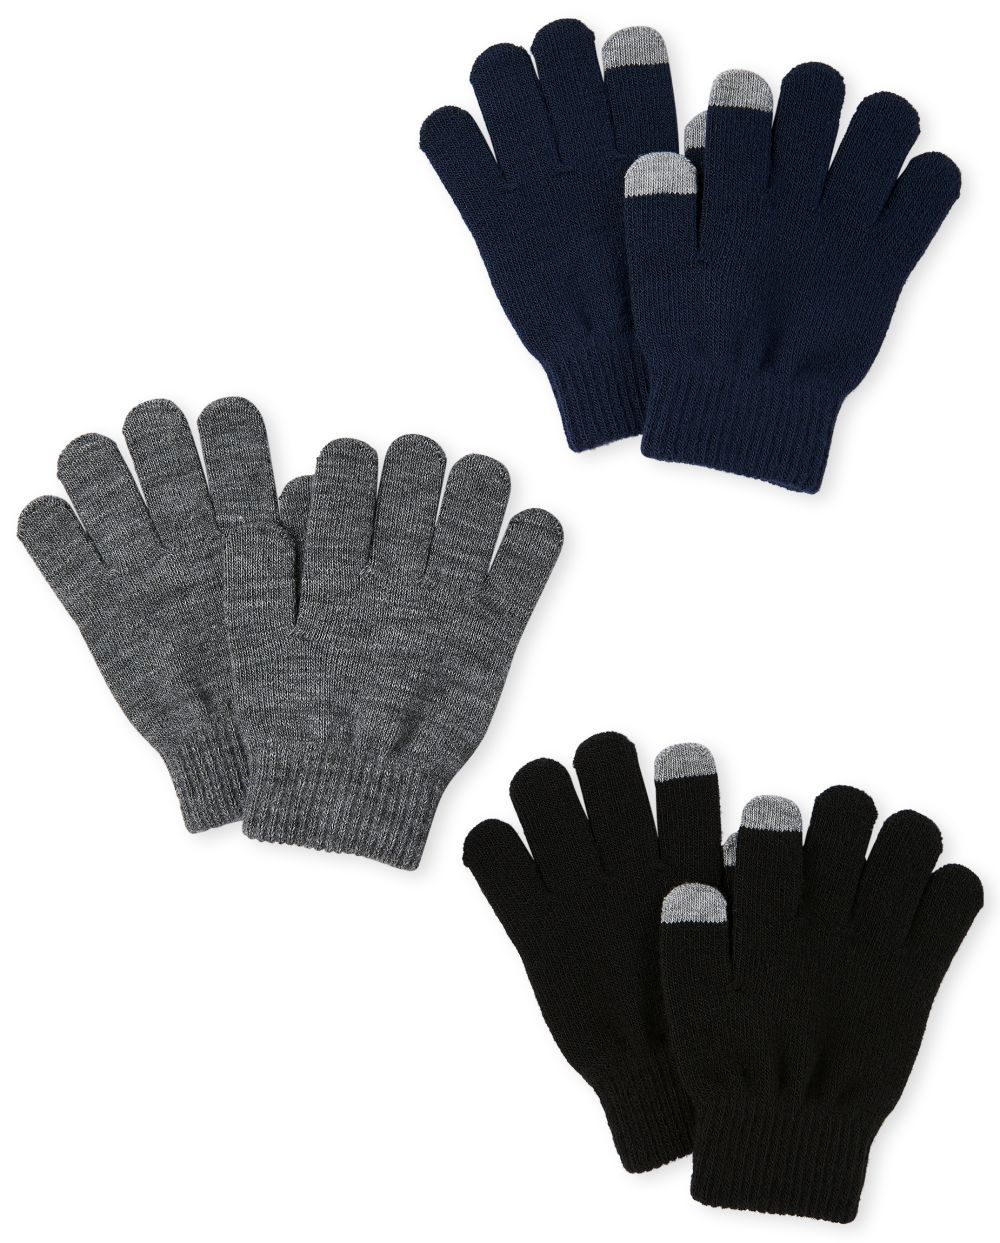 Boys Texting Gloves 2-Pack